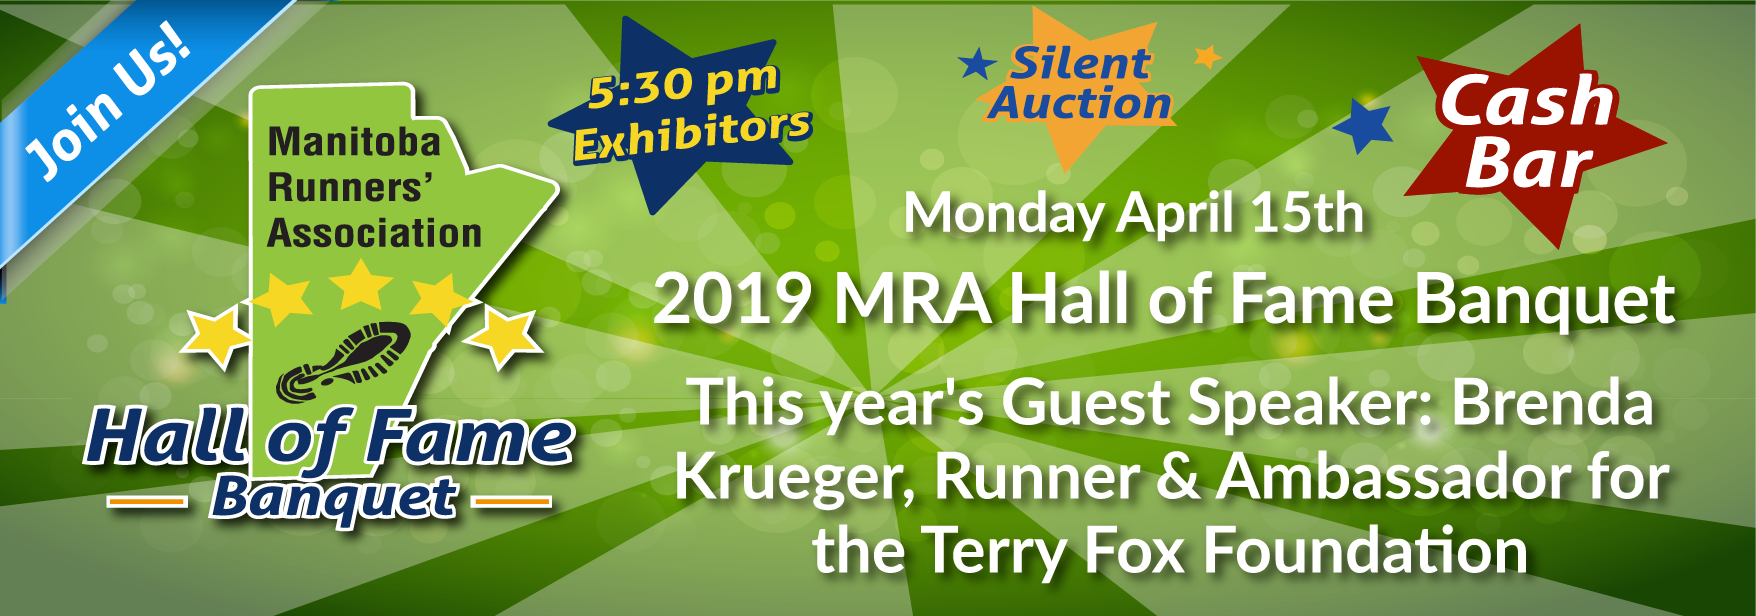 manitoba-runners-association-halloffame